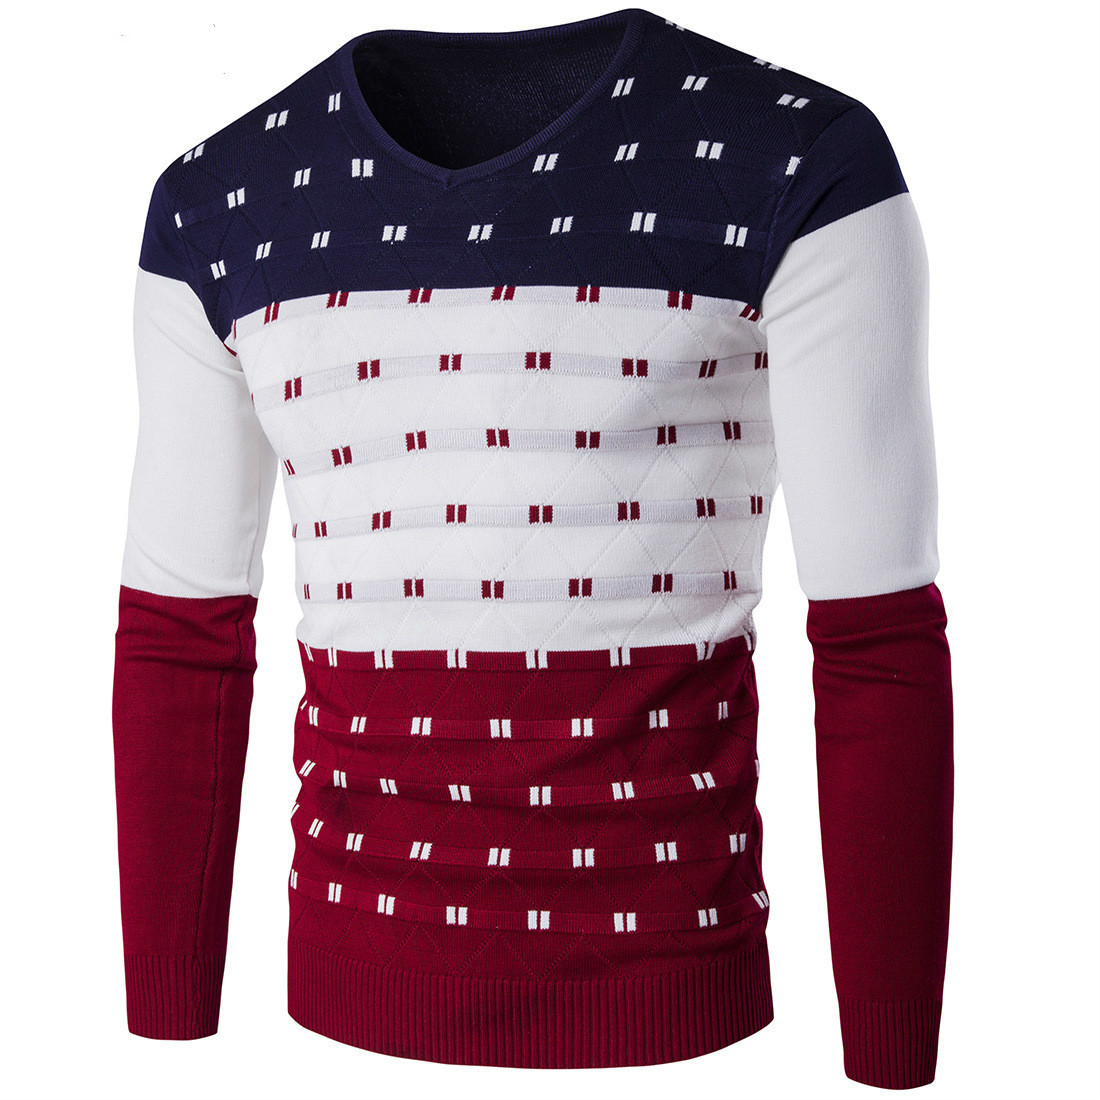 2019 5 Colors Striped Sweater Men Warm Long Sleeve V Neck Winter Clothes For Male Fashion Slim Fit Print Pullover Sweater